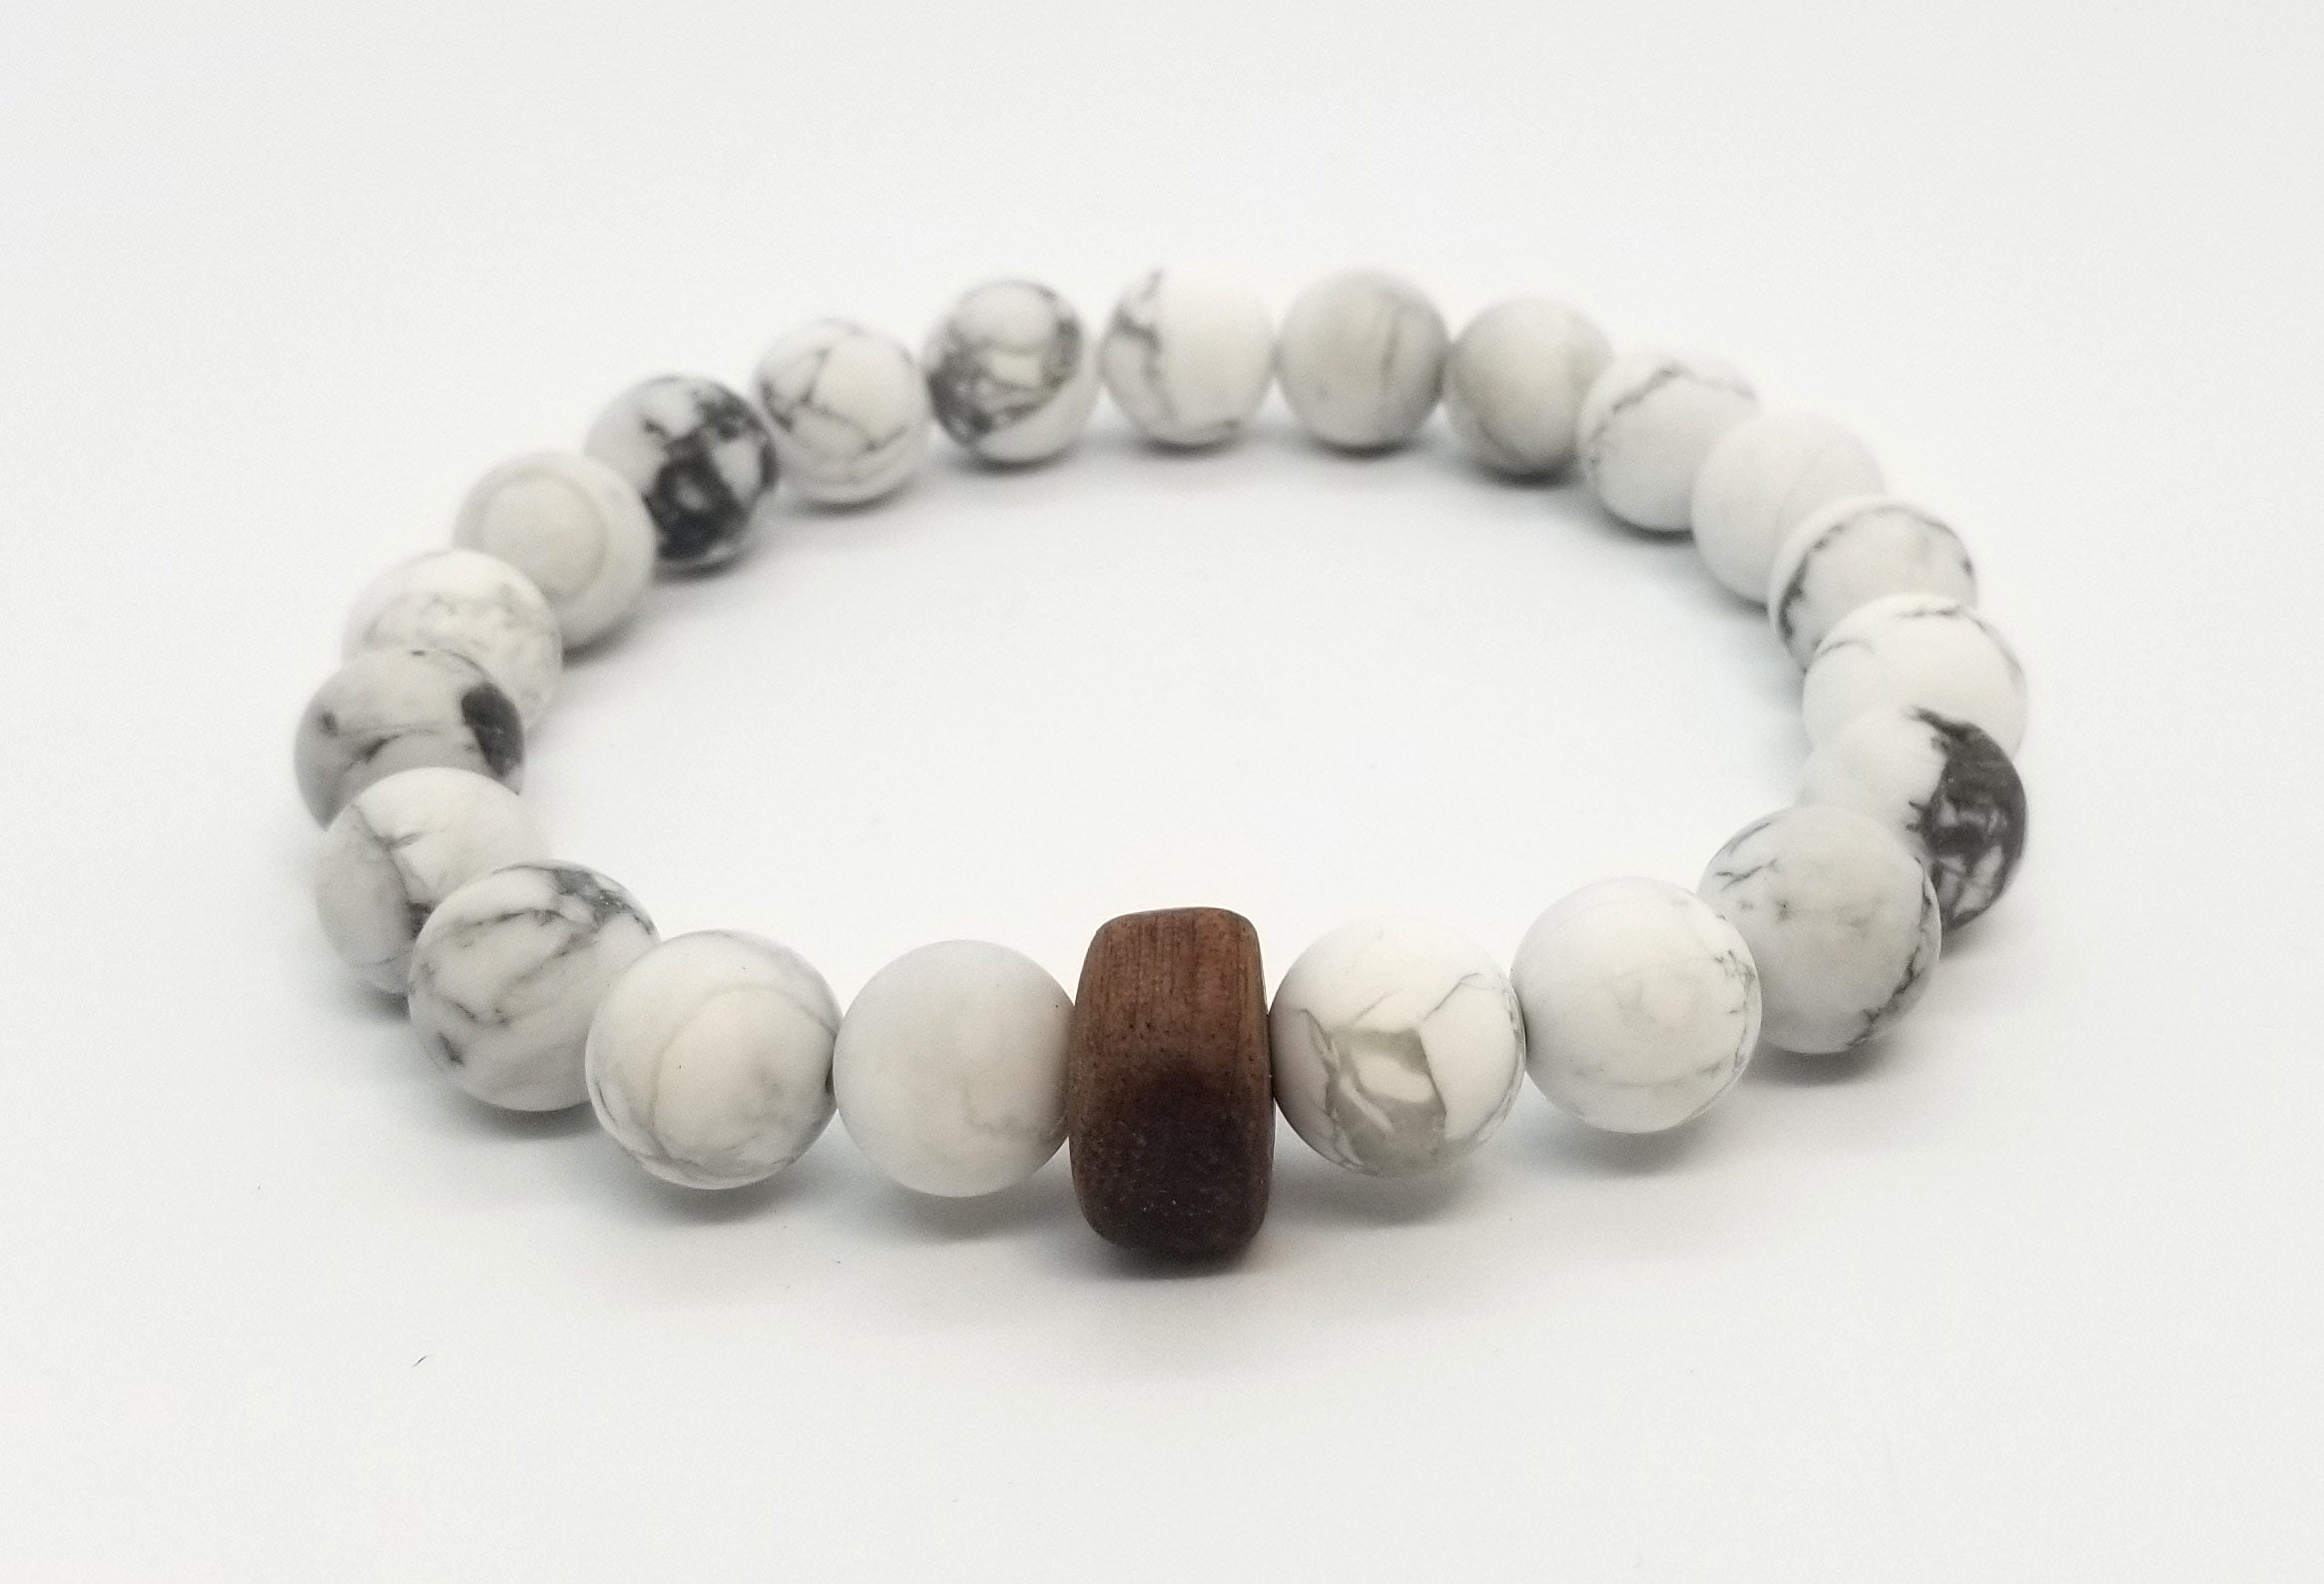 10mm Howlite Walnut Wood Bead Bracelet